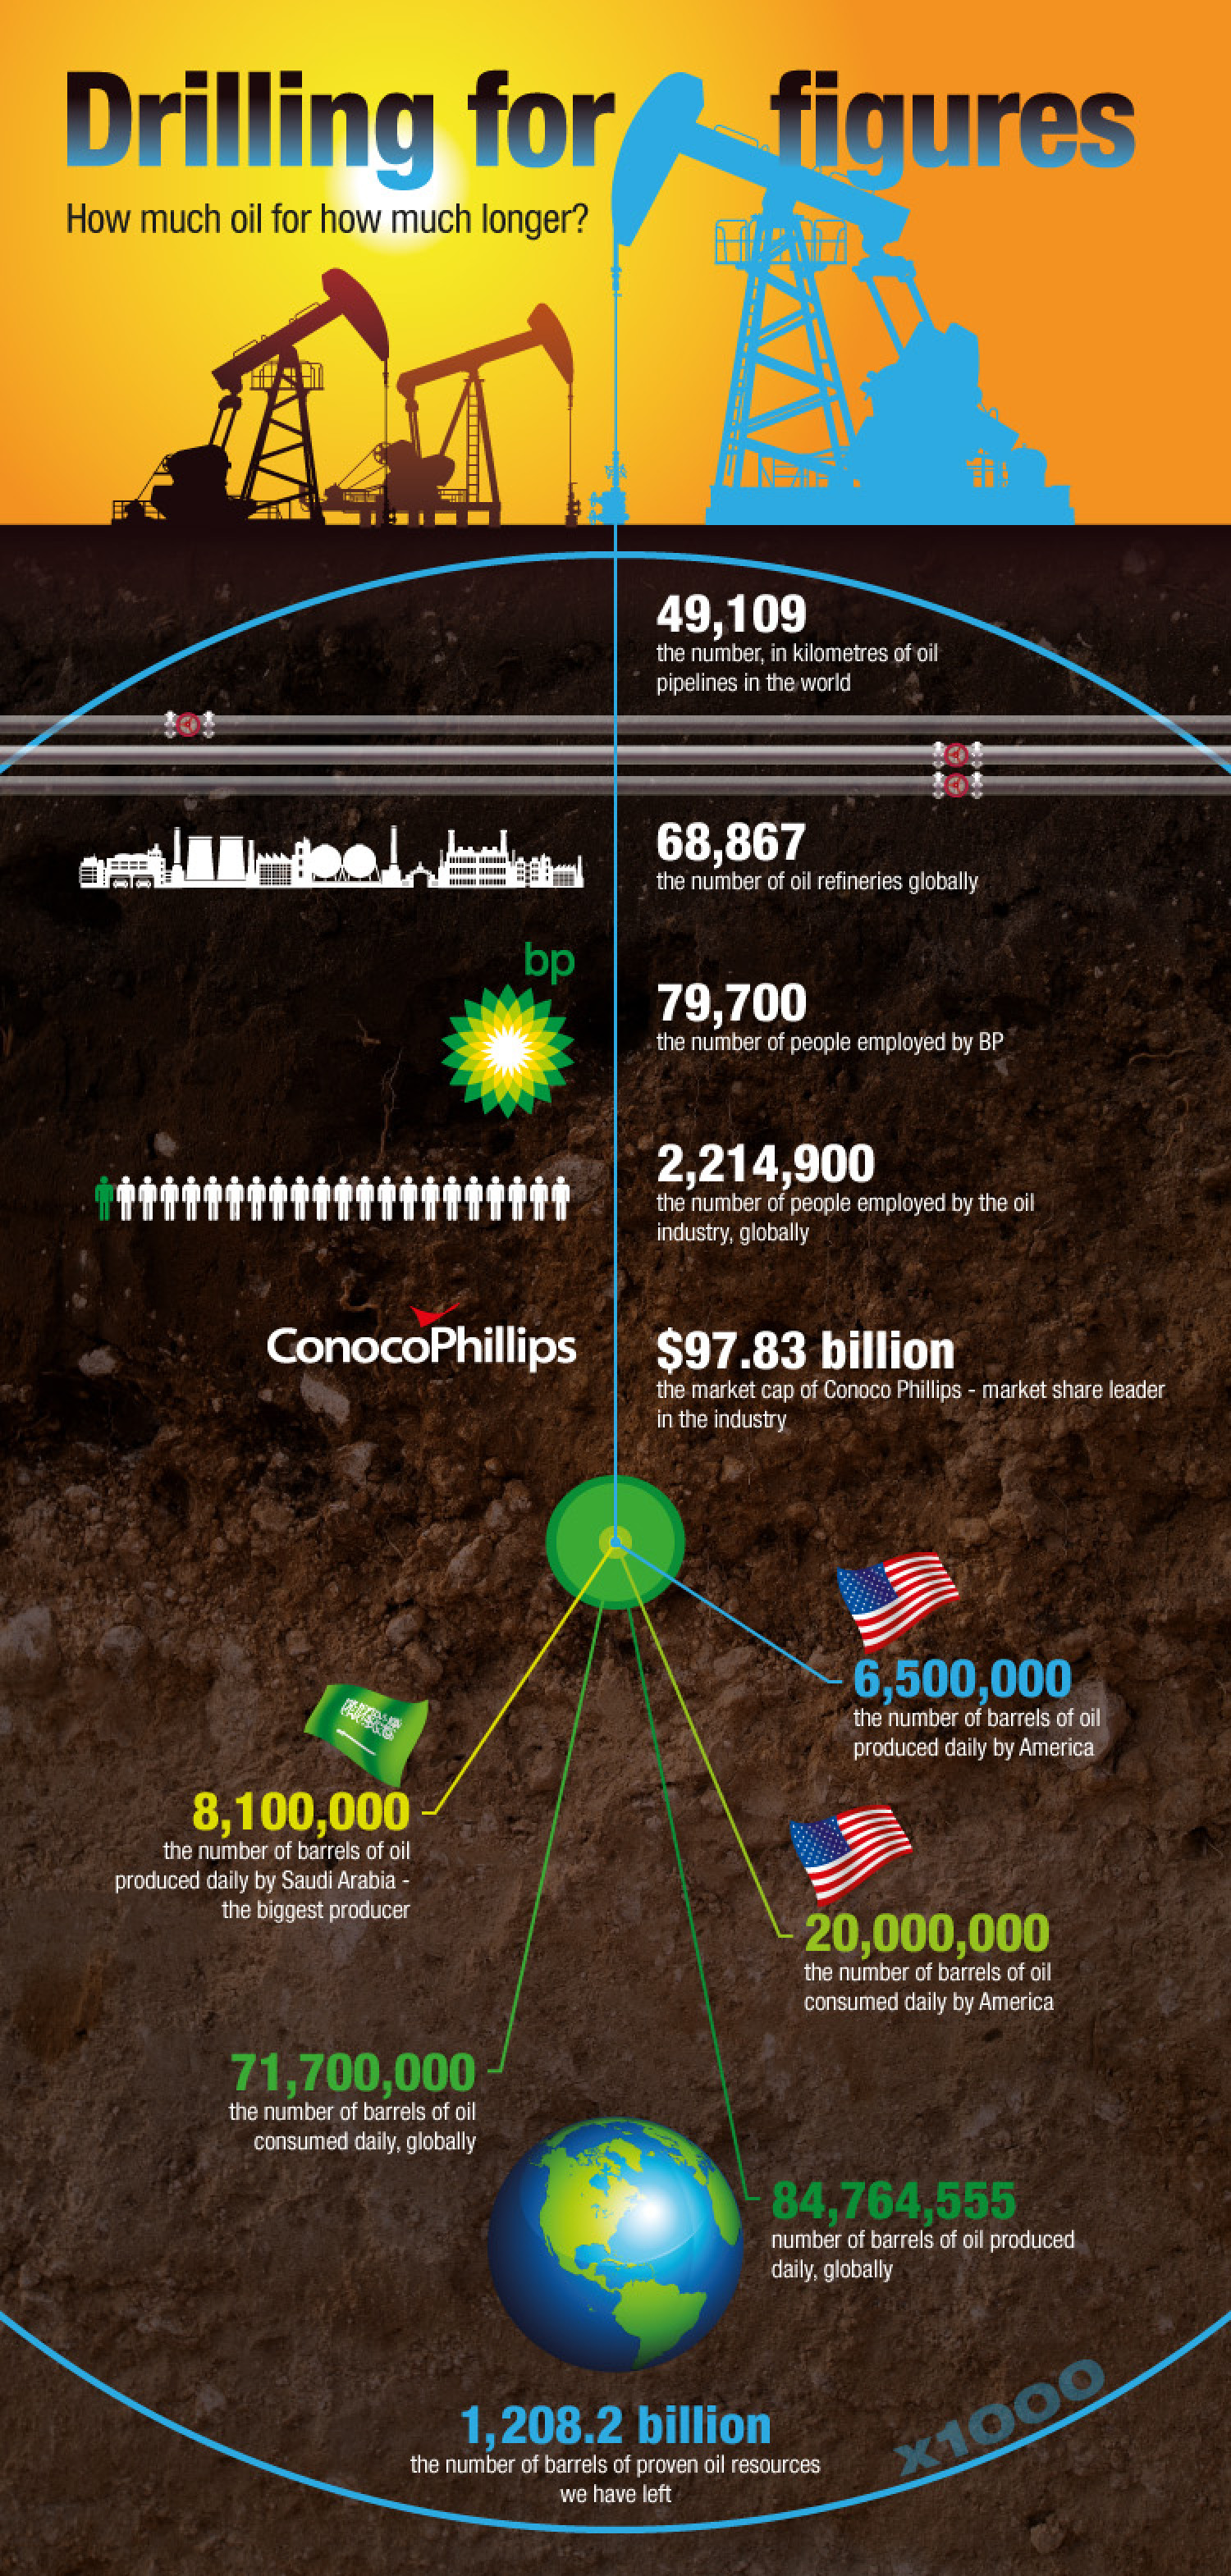 Drilling for Figures Infographic